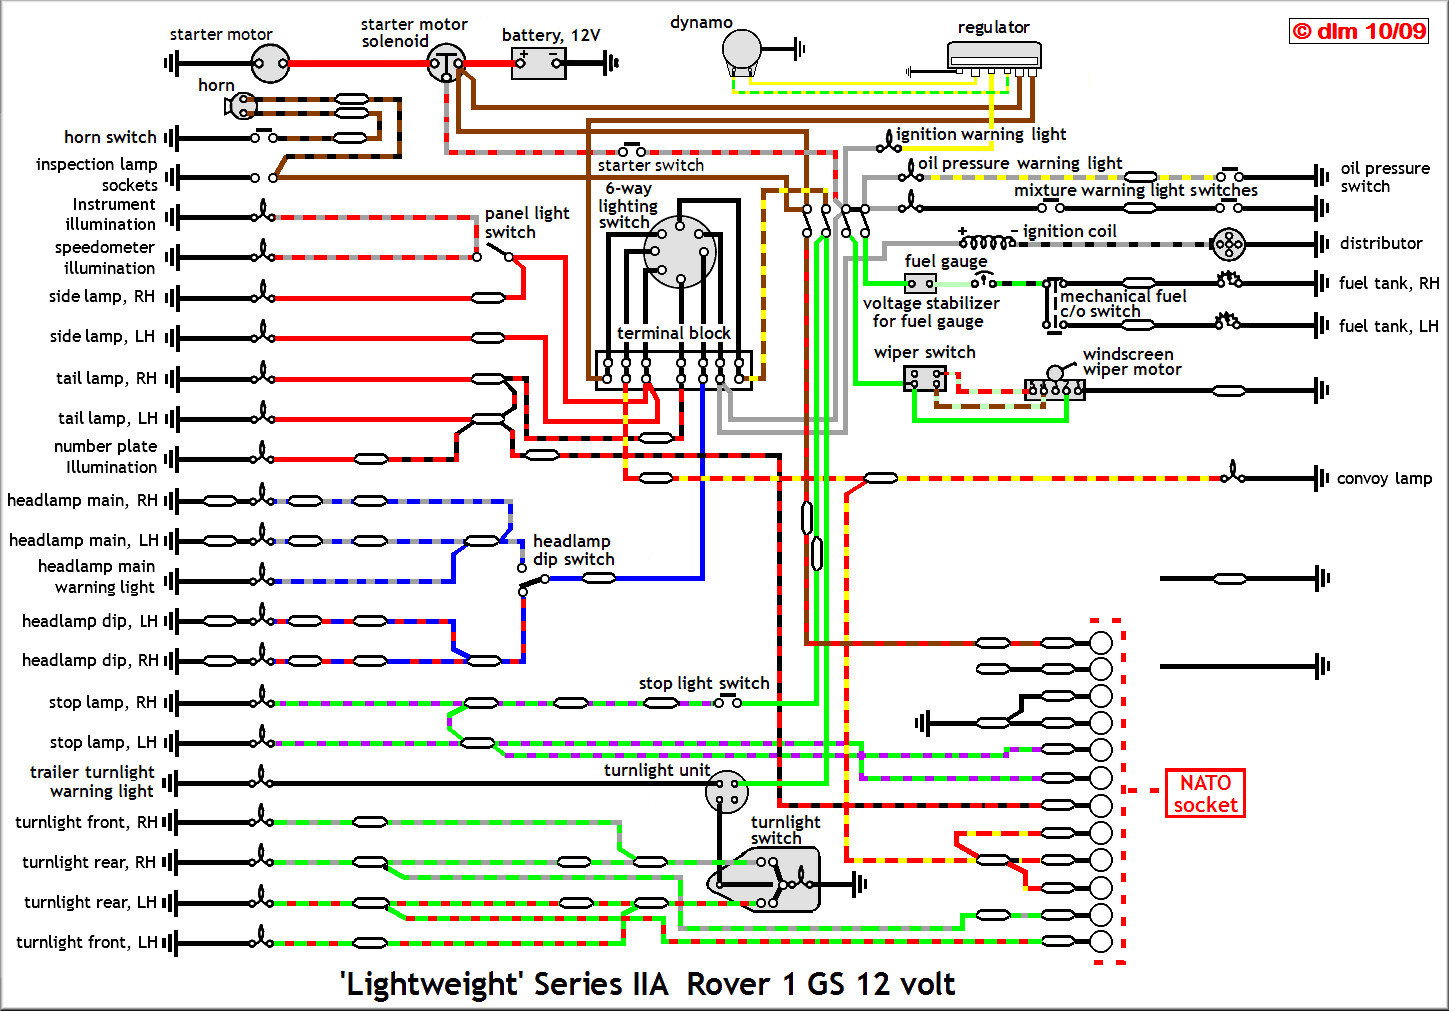 Rover 1 Diagram defender 90 wiring diagram wiring diagram for land rover defender,Land Rover Series 3 Dash Wiring Diagram